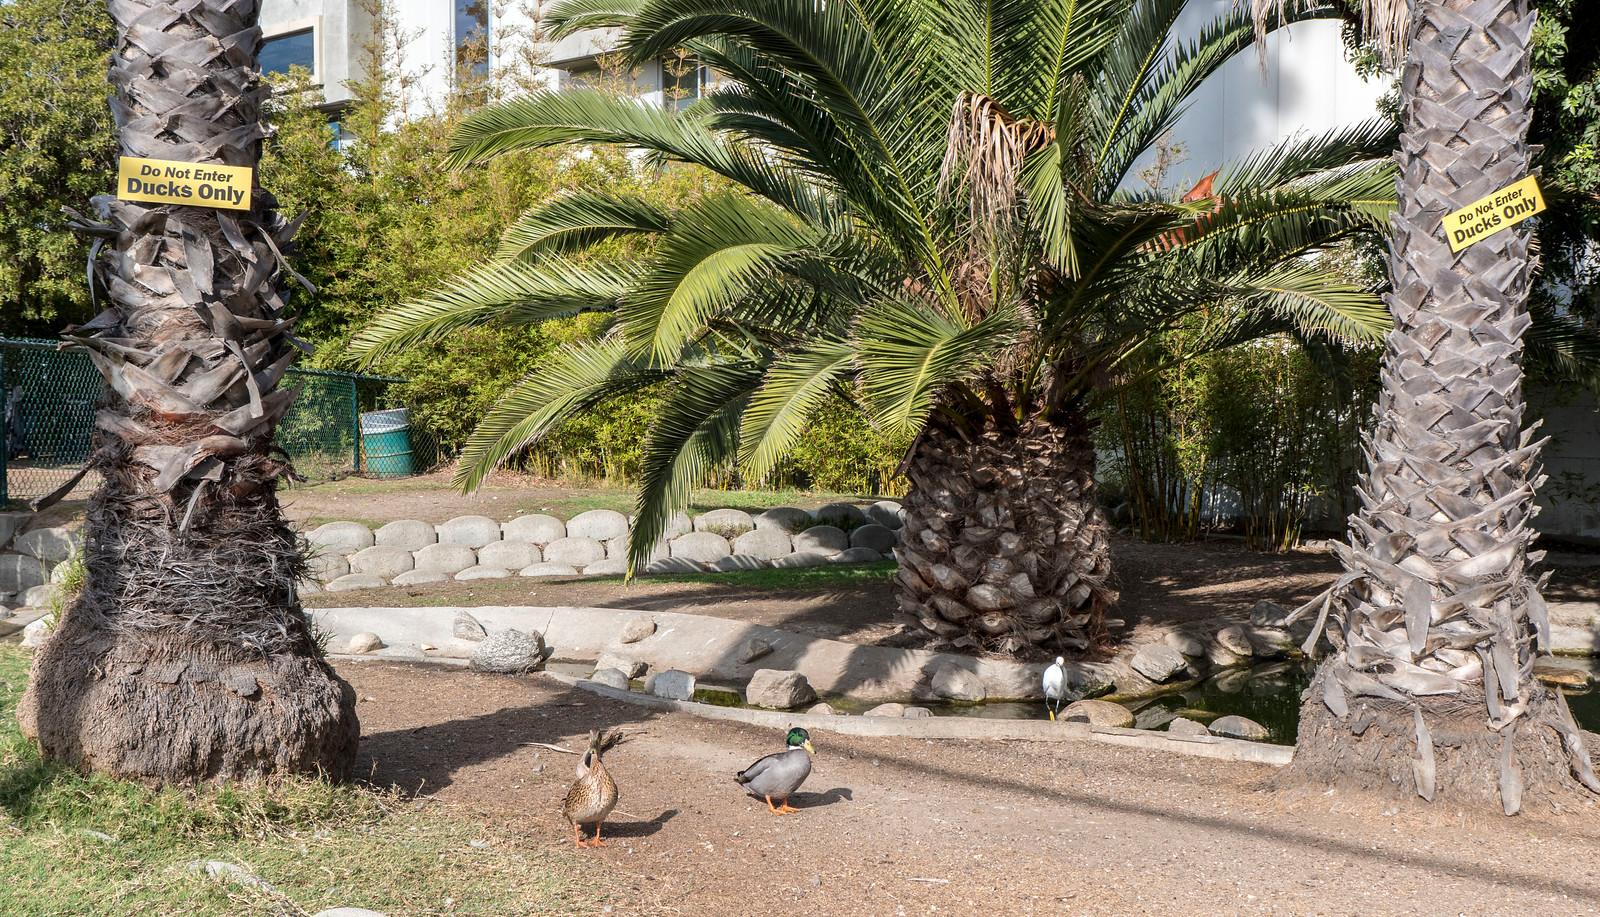 Venice Canals Duck Park - What to do in Los Angeles in one day